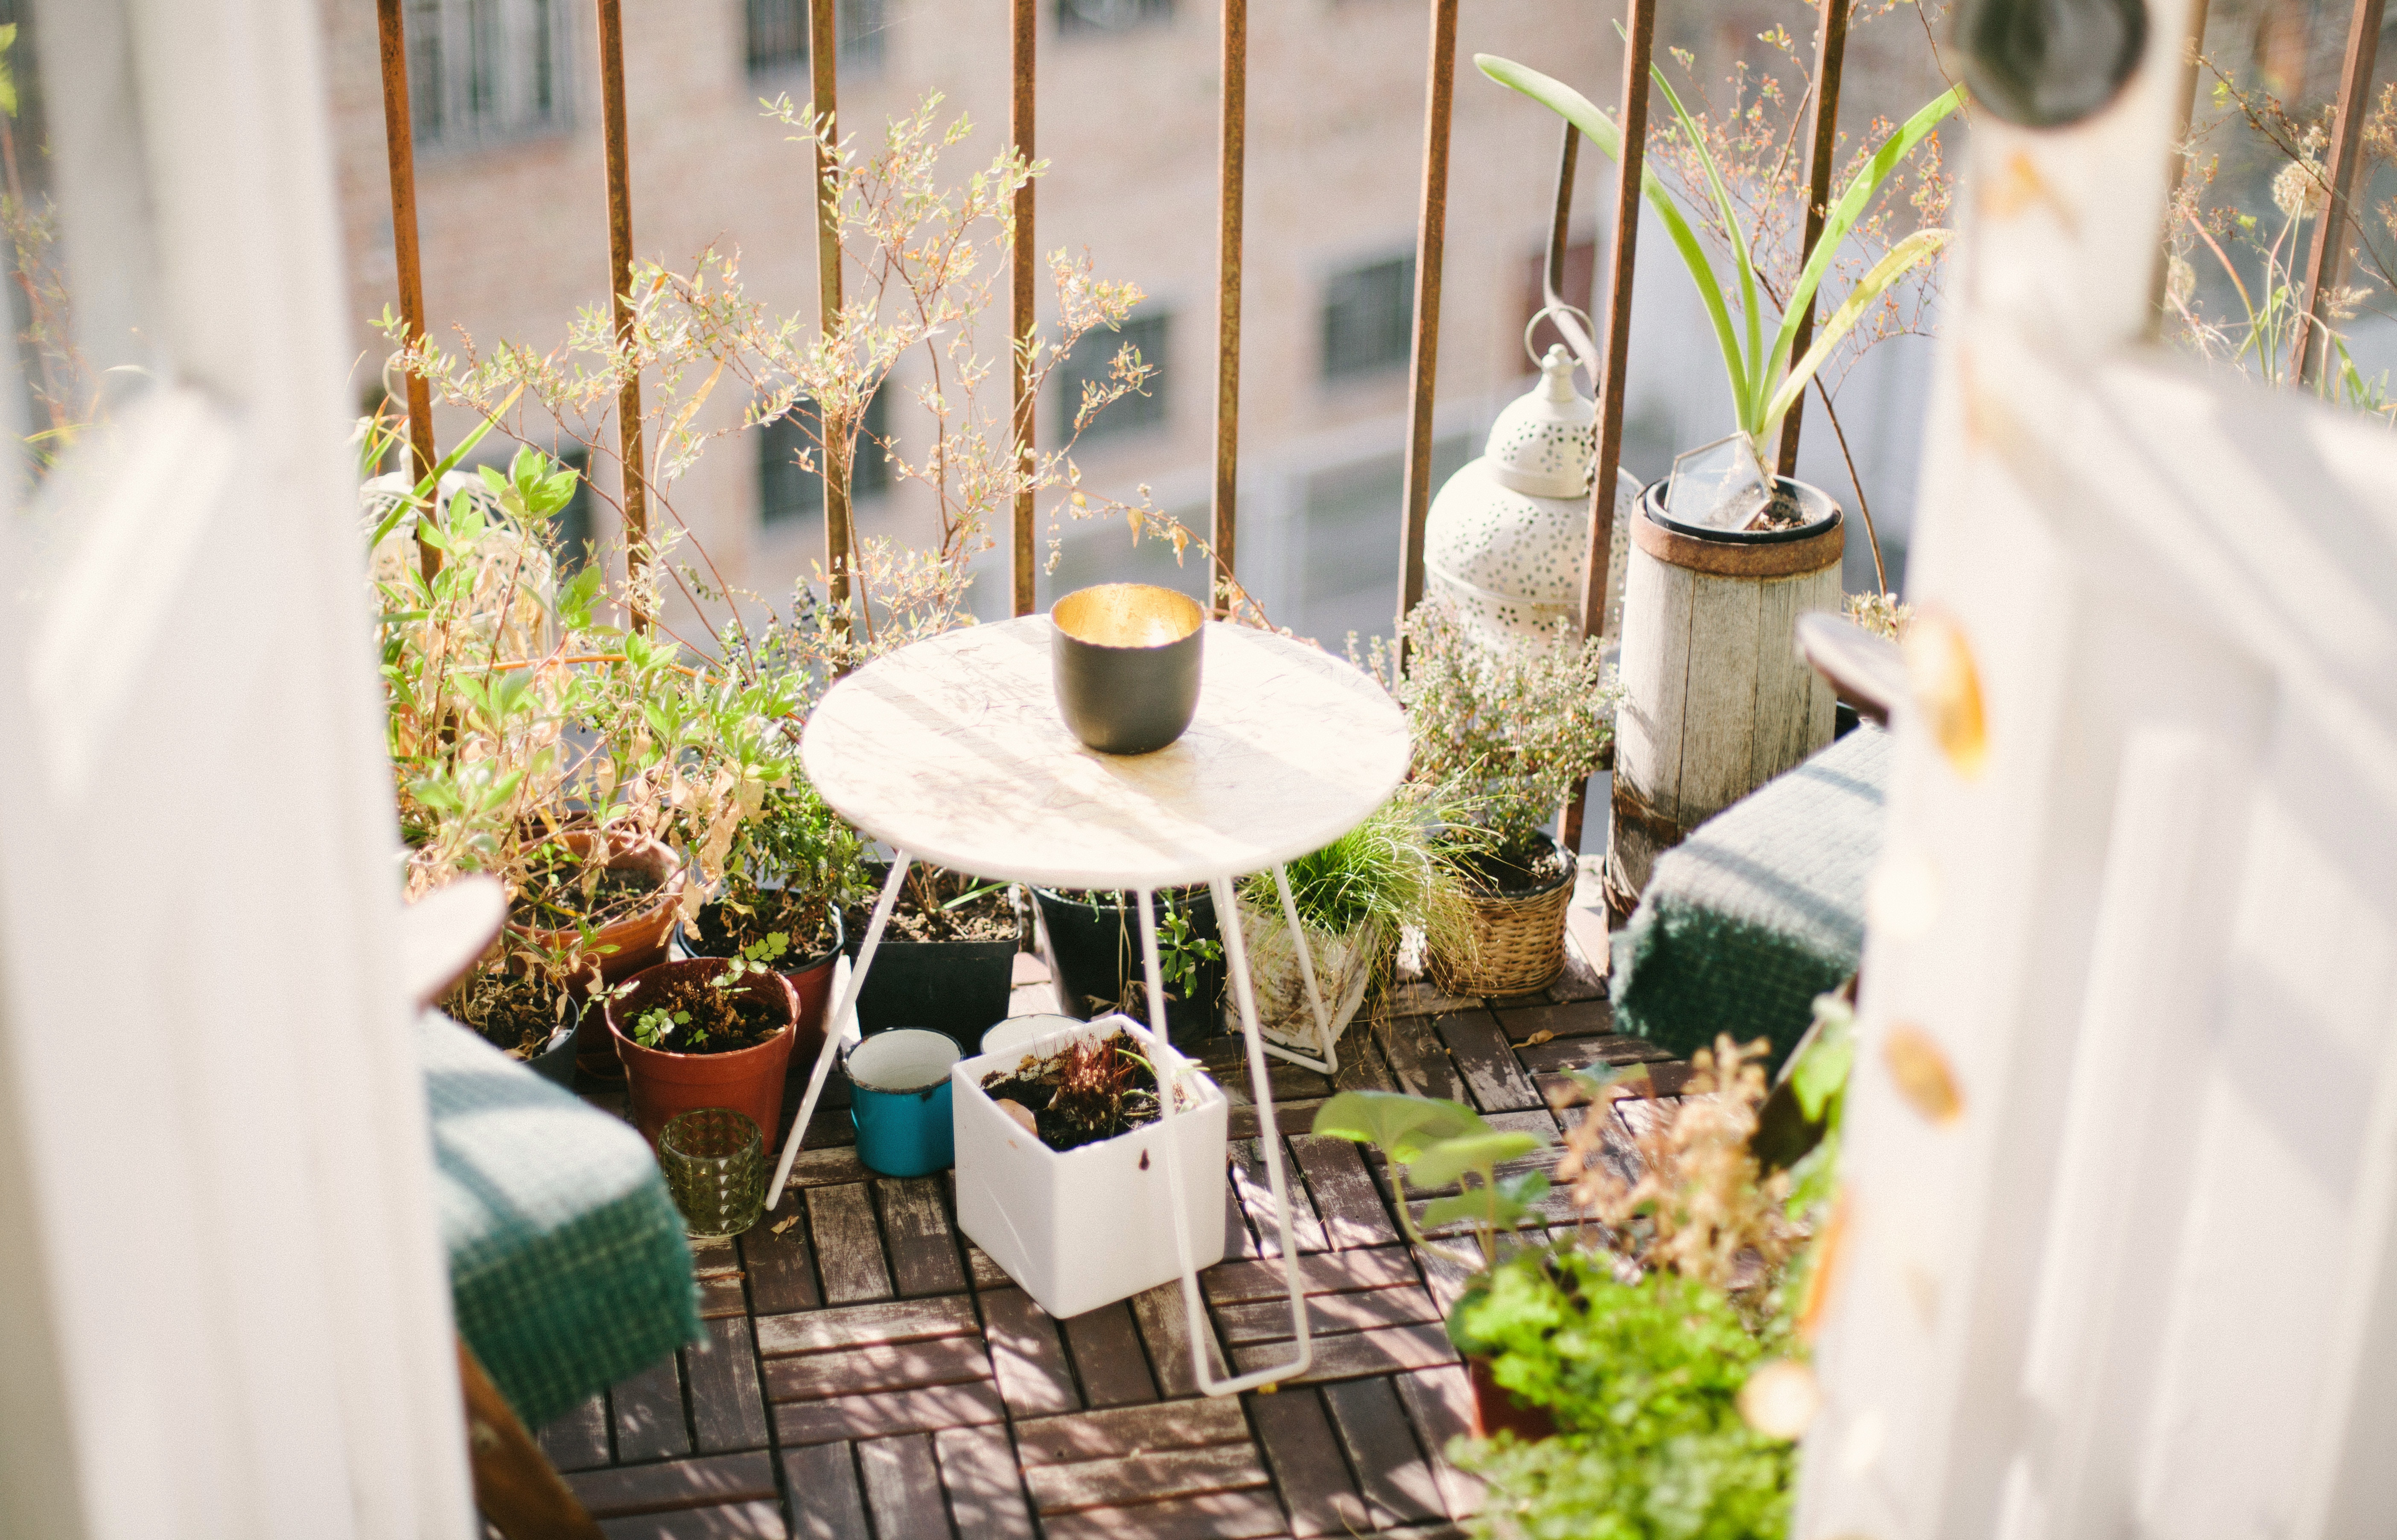 Sun-soaked plants growing on an urban balcony Image: Artur Aleksanian on Unsplash